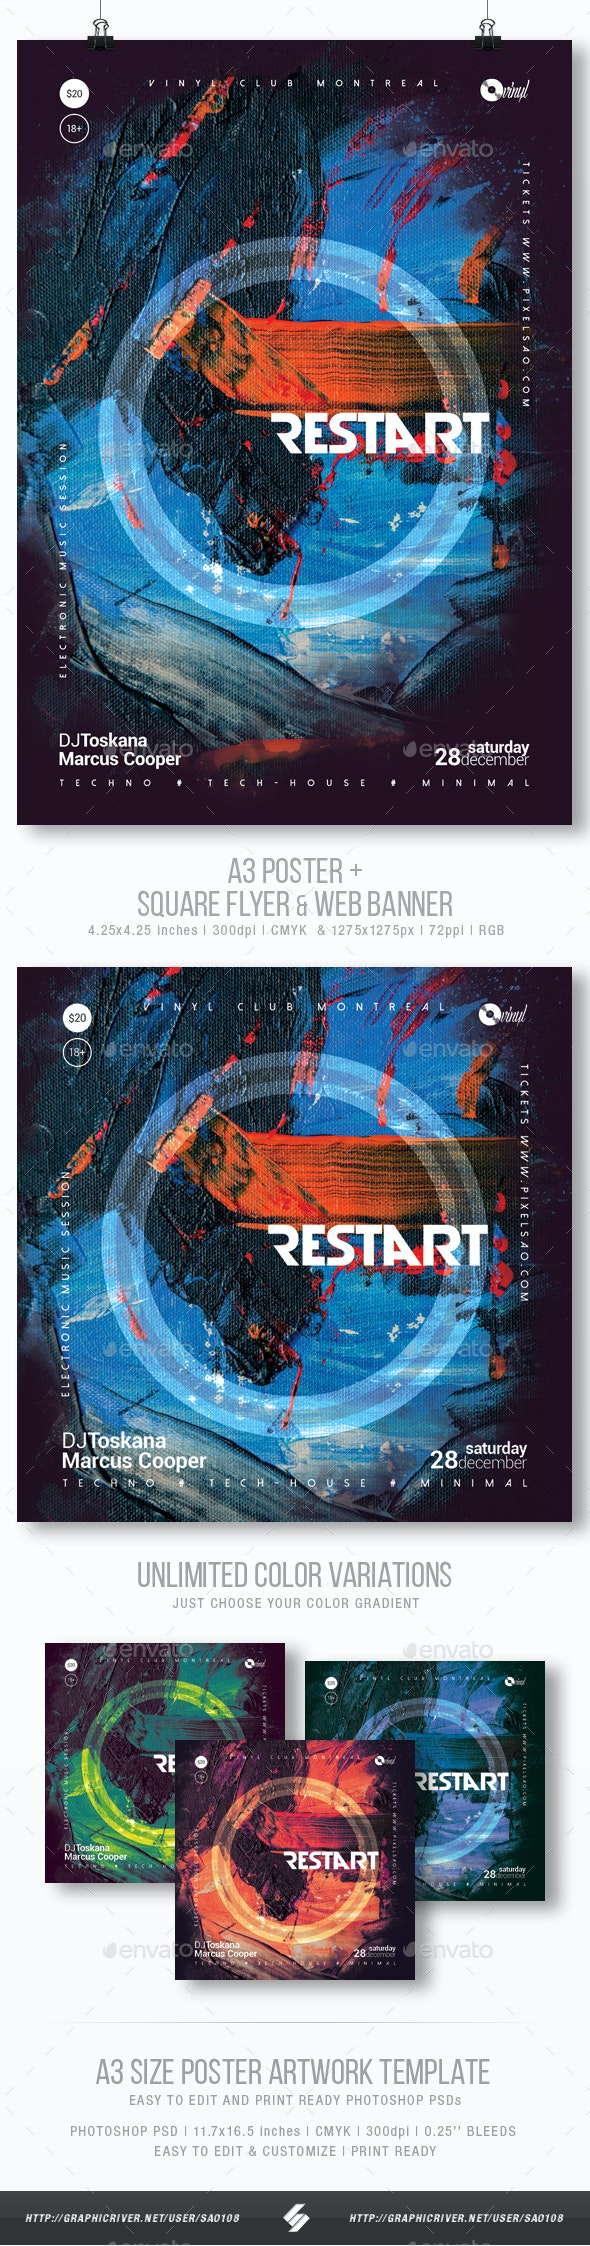 Restart - Abstract Party Flyer / Poster Template A3 - Clubs & Parties Events